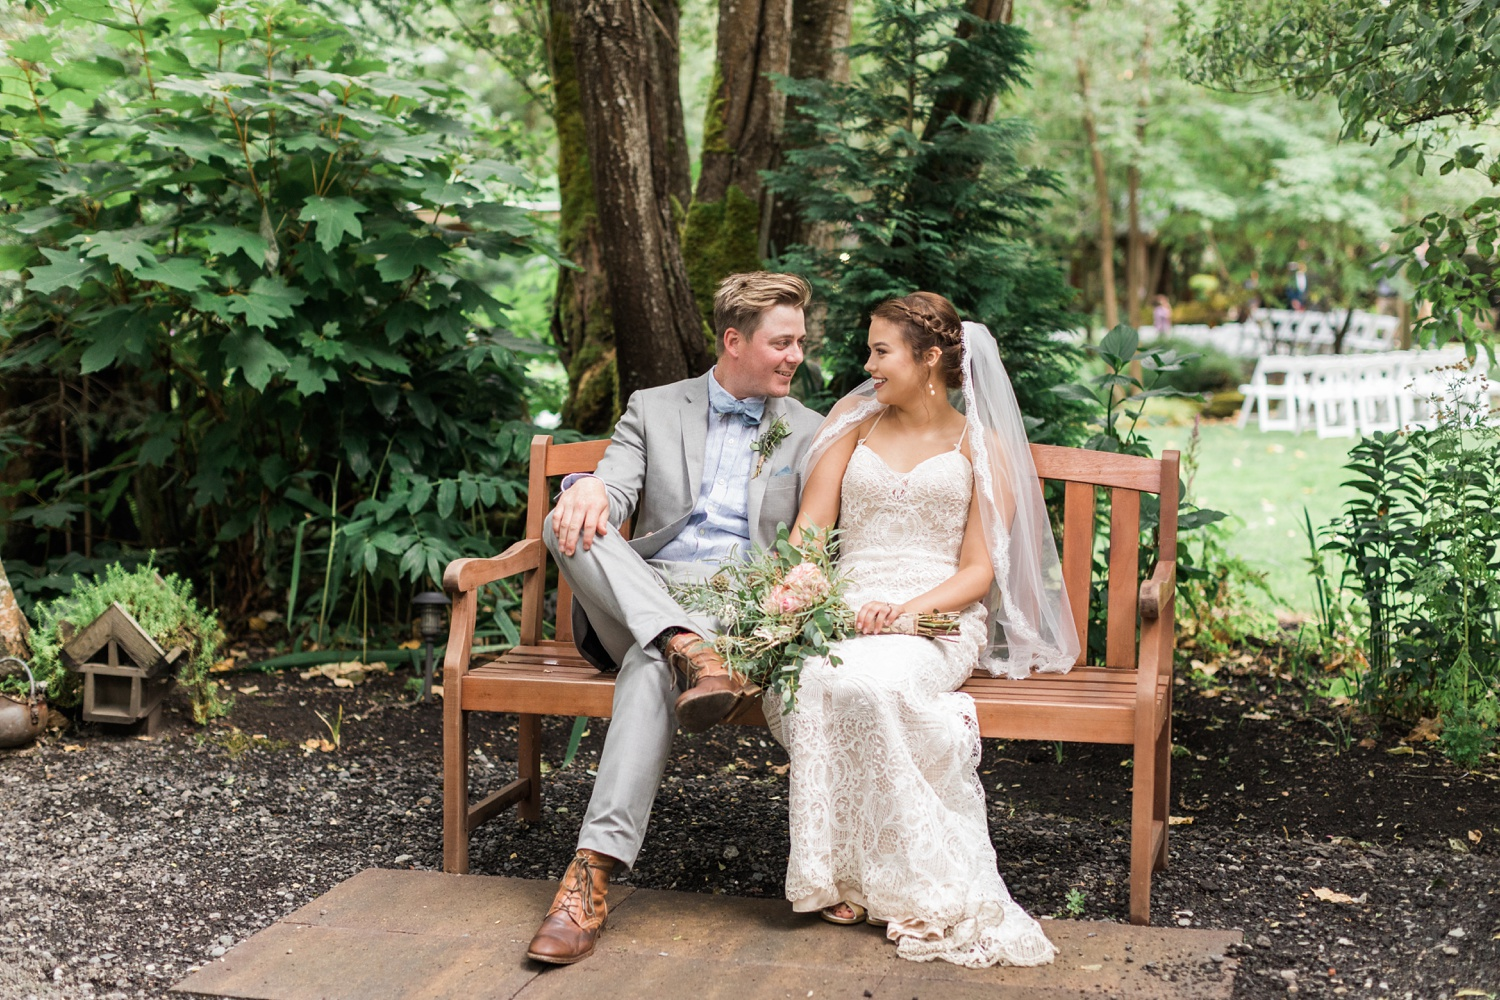 A bride and groom sit on a bench before their summer wedding at Maroni Meadows in Snohomish, a wedding venue near Seattle, WA. | Joanna Monger Photography | Seattle & Snohomish Photographer